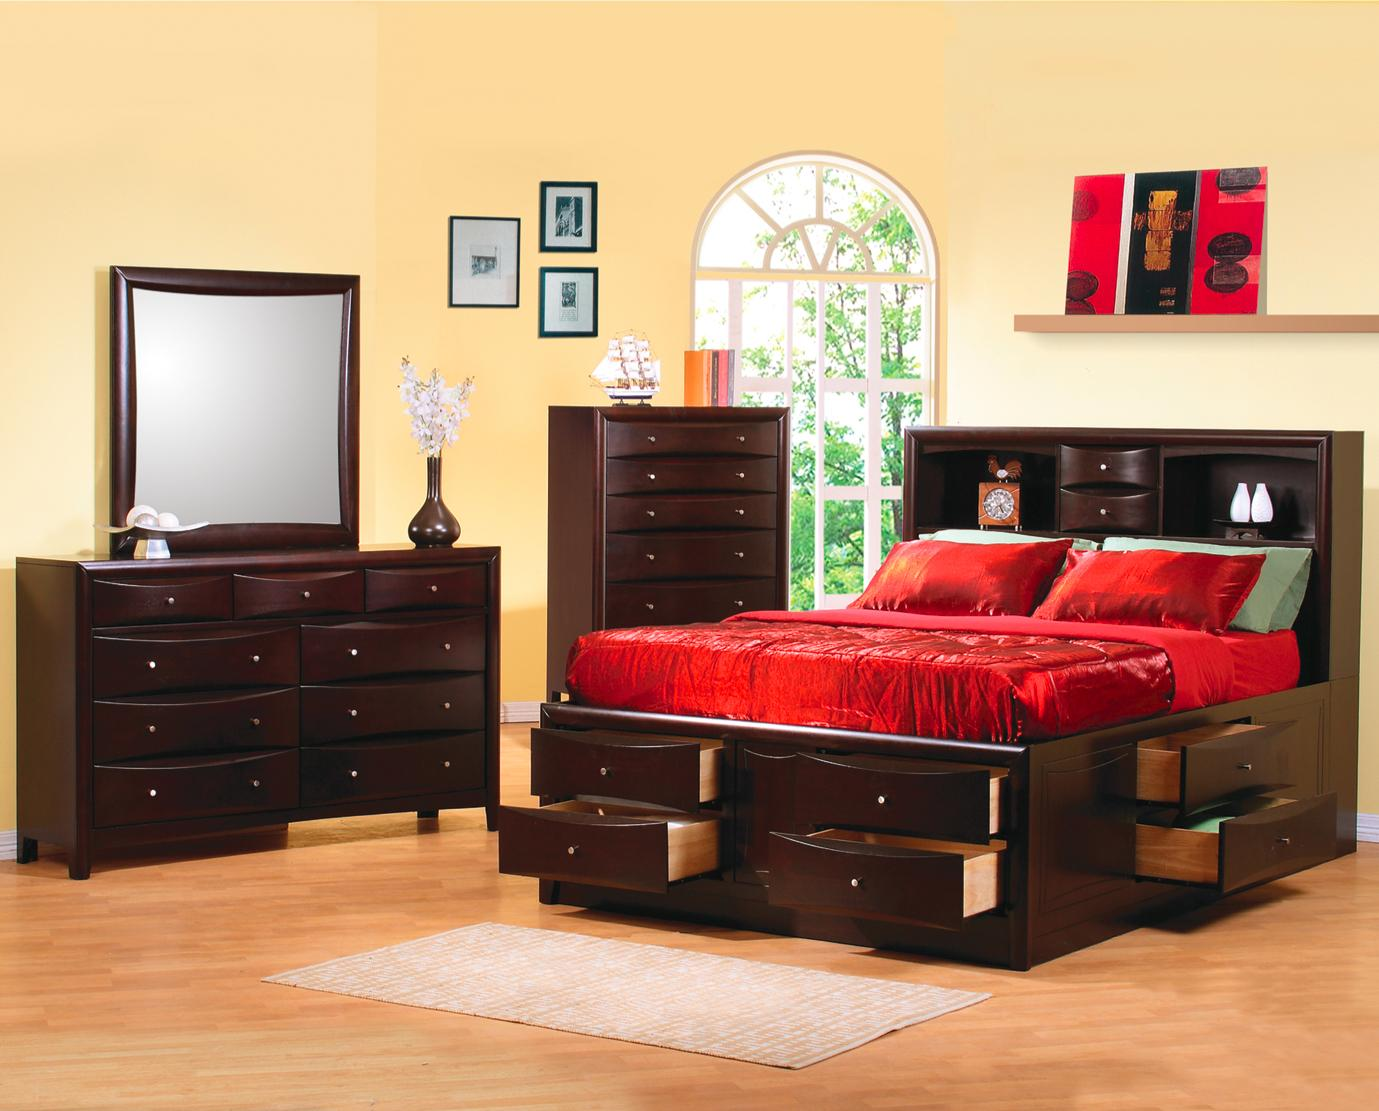 Under Bed Storage Frame Phoenix Contemporary Queen Bookcase Bed With Underbed Storage Drawers Coaster 200409